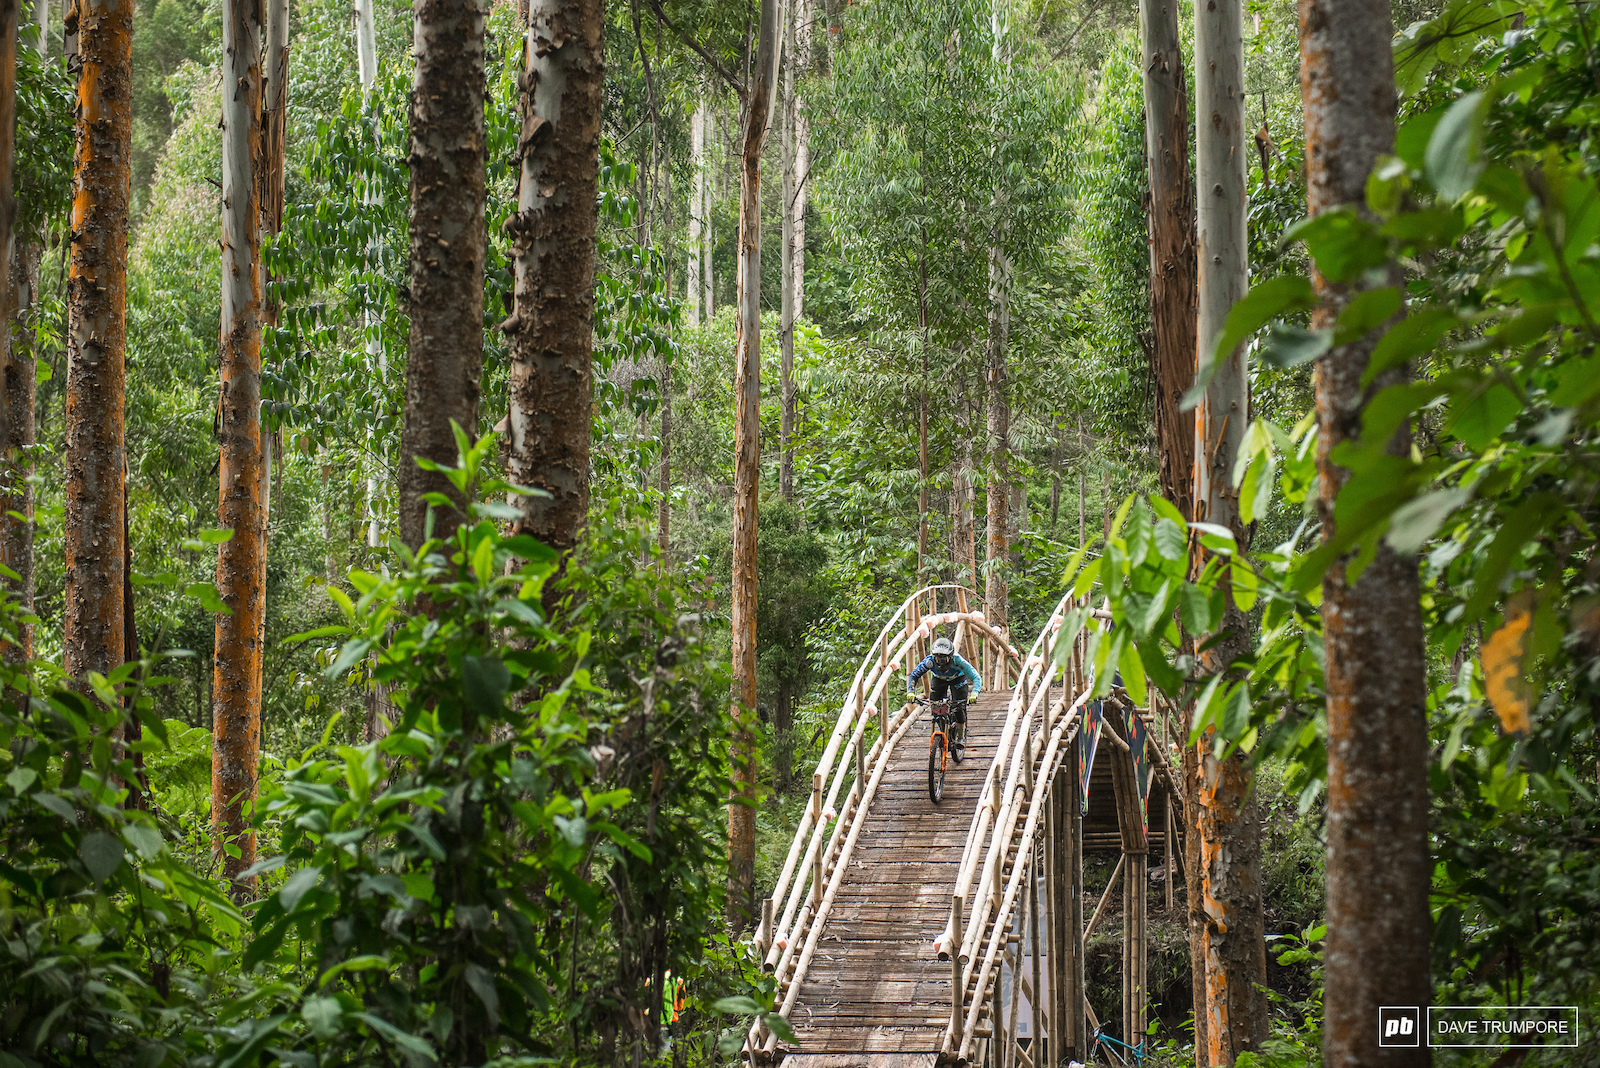 Noga Korem drops in to one of three huge bamboo bridges that crisscross the road on stage 3.